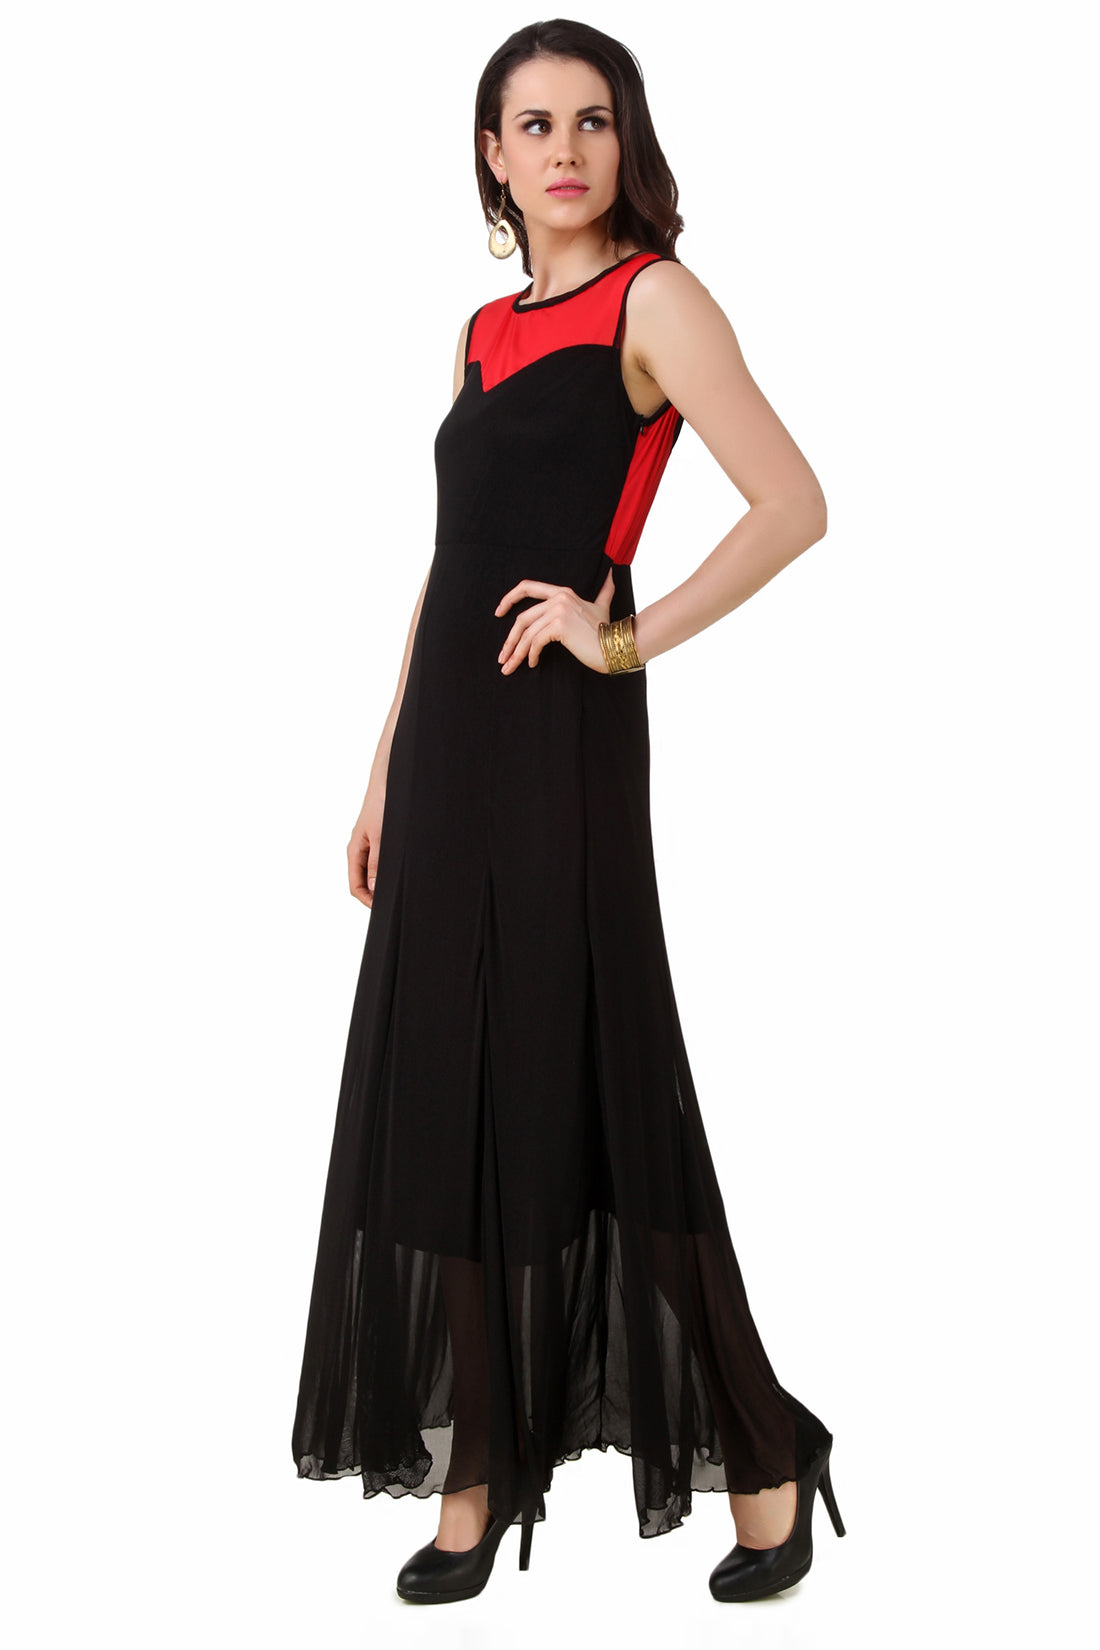 Fasense Western Evening Hot Dress By Fasense Your Lingeries